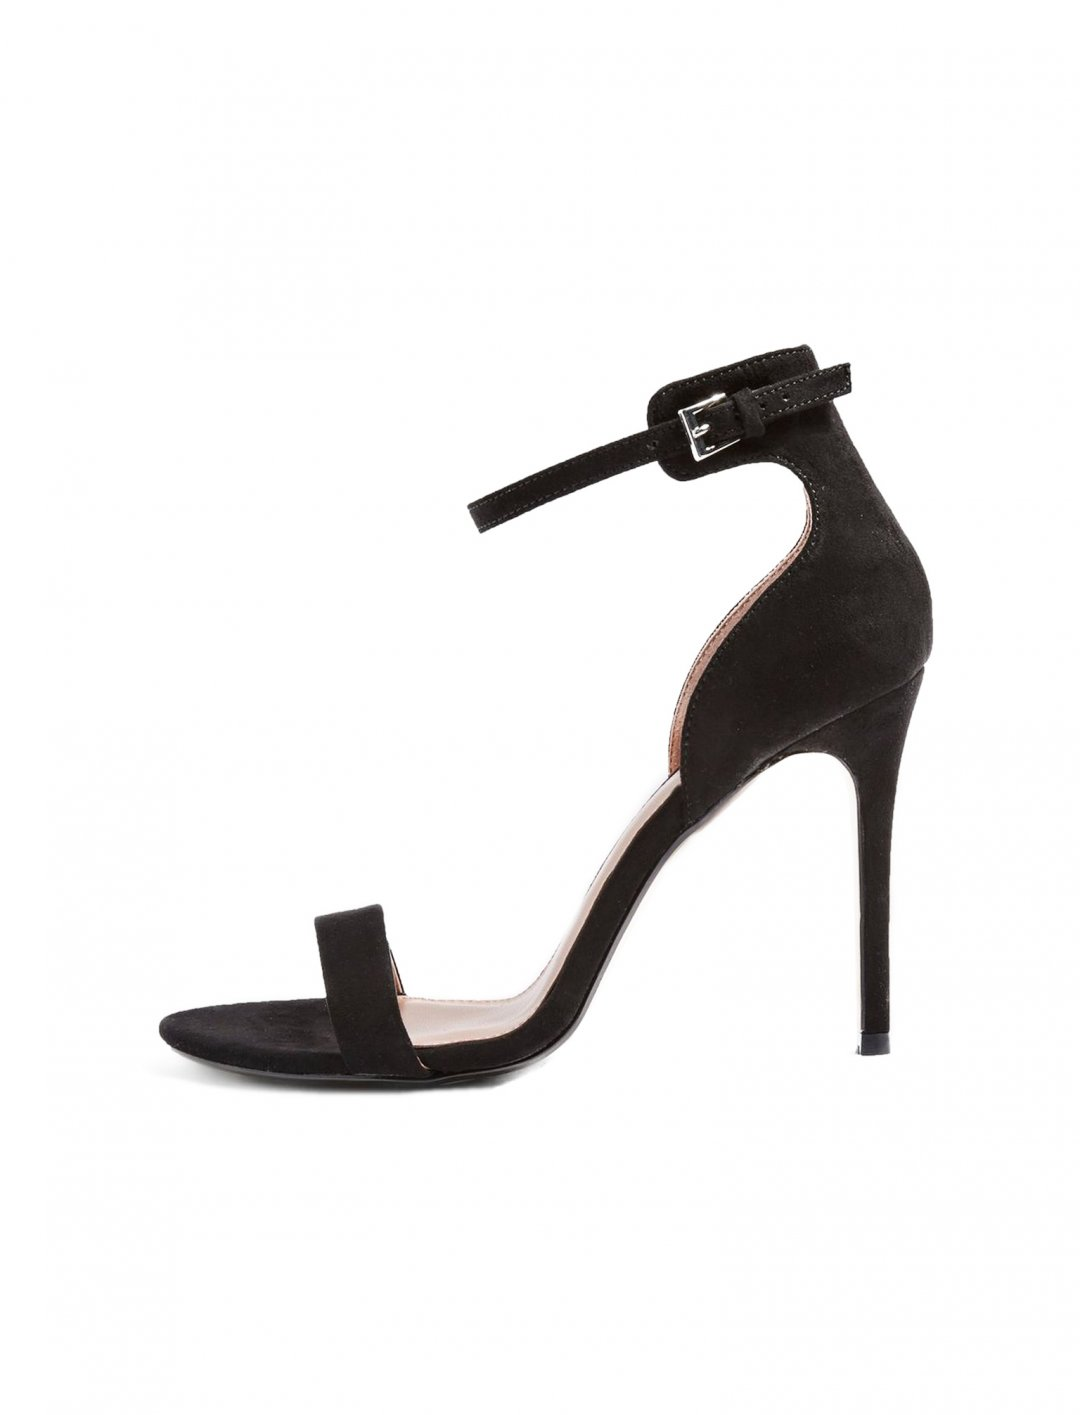 Topshop Marcelle Two Part Sandals Shoes Topshop